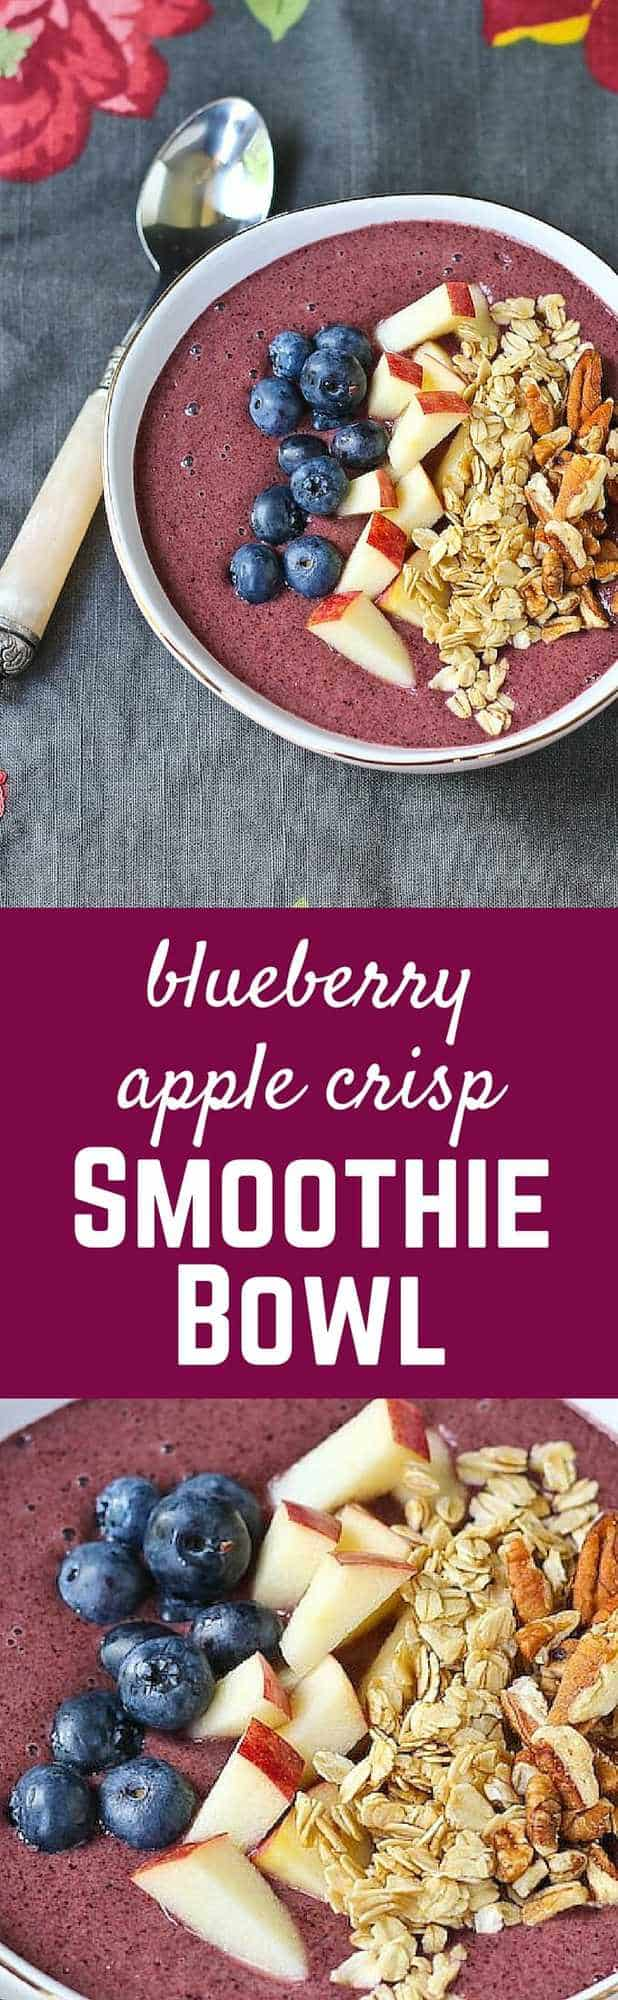 Blueberry Apple Crisp Smoothie Bowl - such a great way to start the day! Complete with hidden veggies! Get the easy recipe on RachelCooks.com!